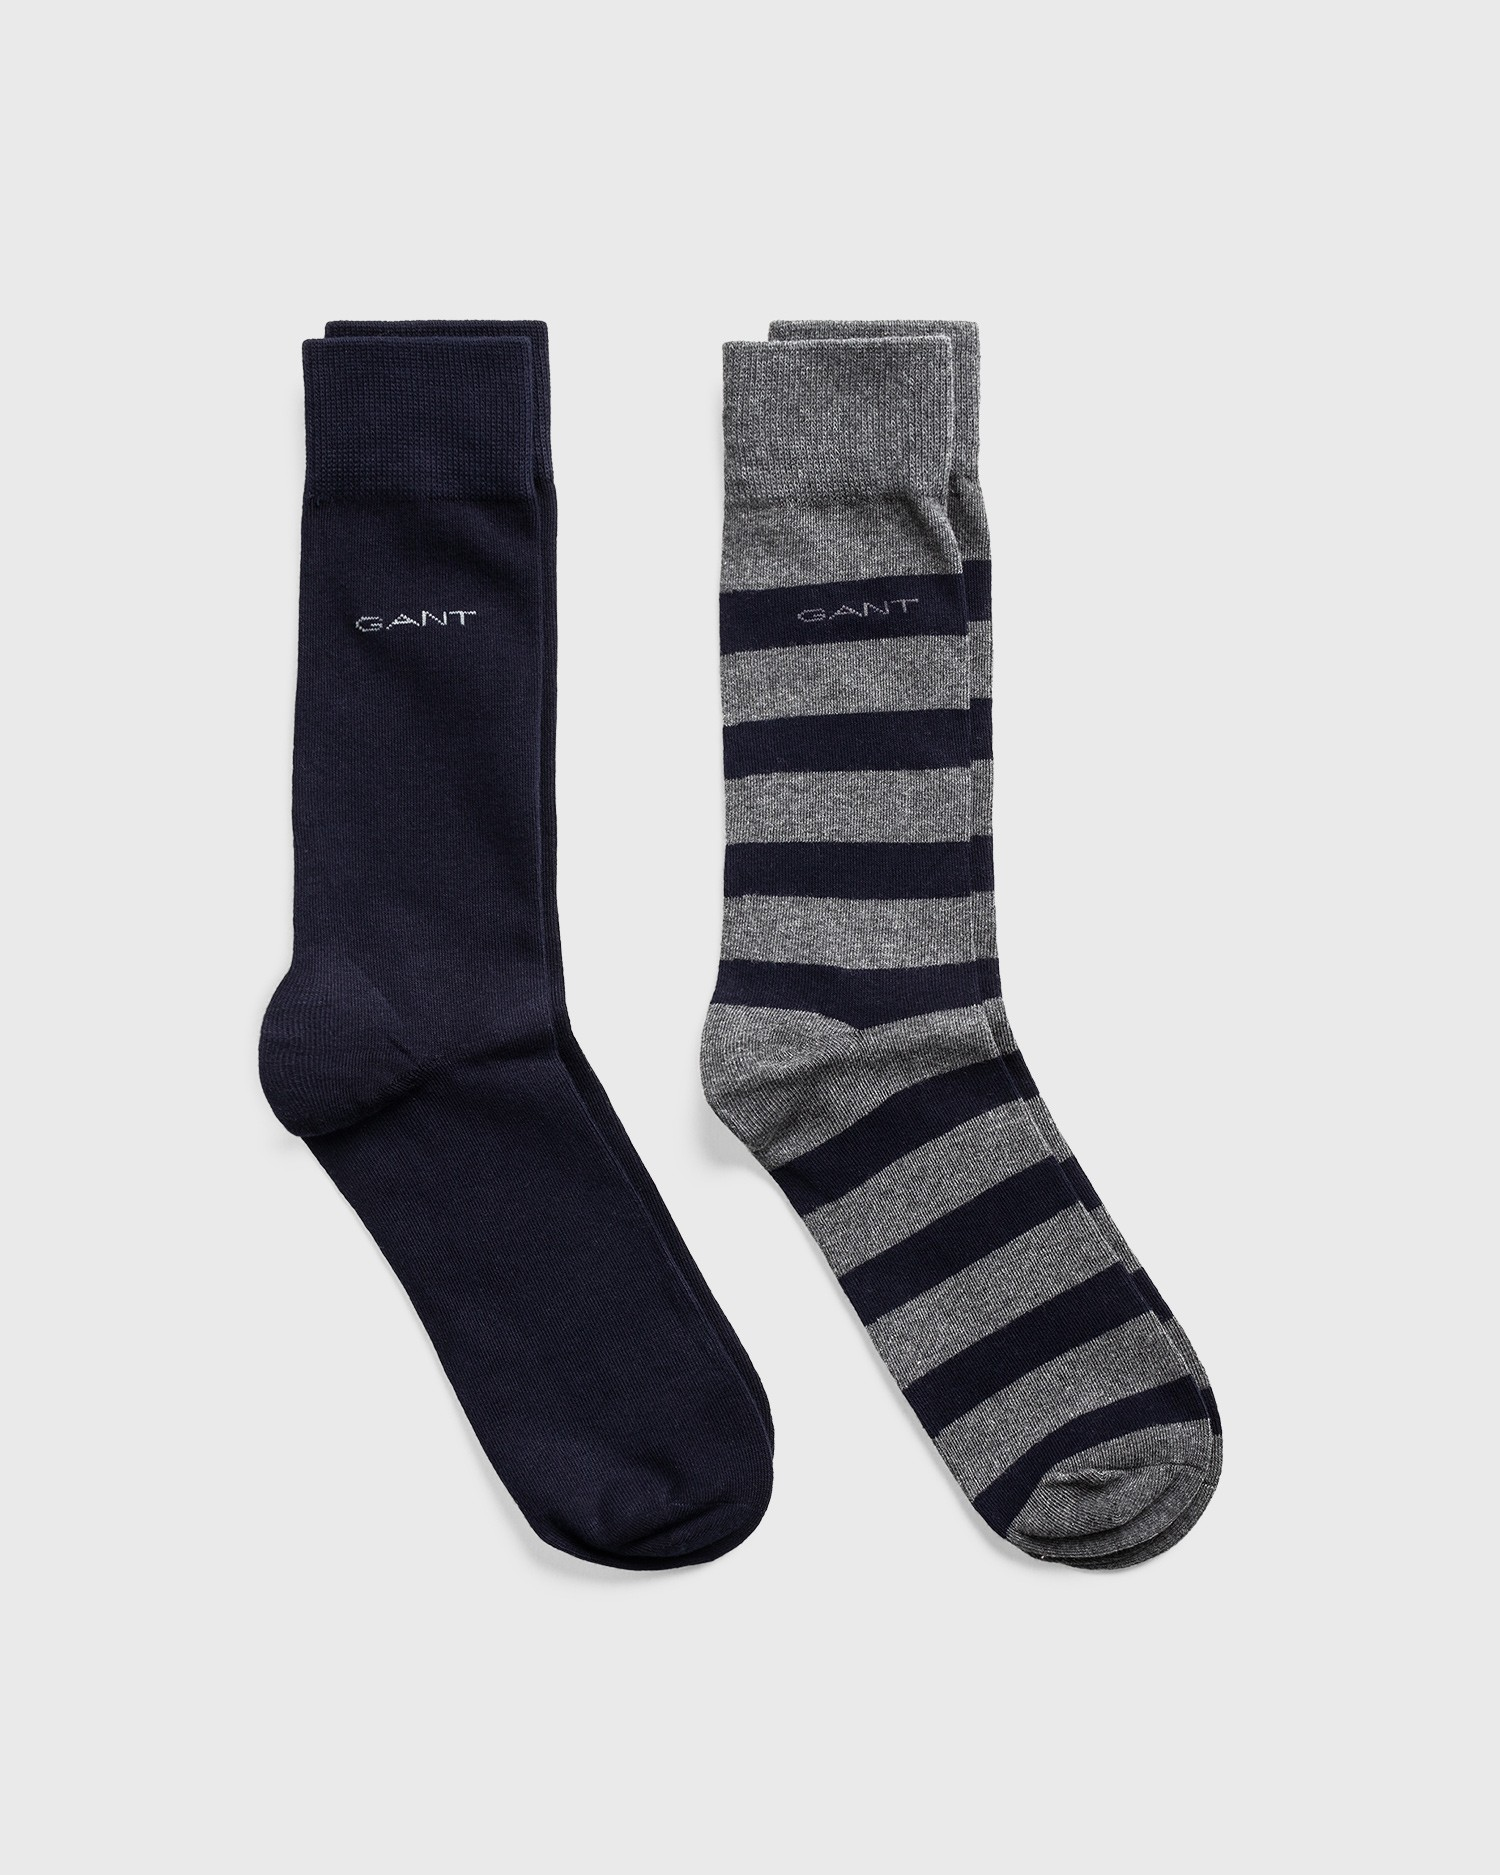 GANT Unisex 2 Pack Barstripe And Solid Socks - 9960084